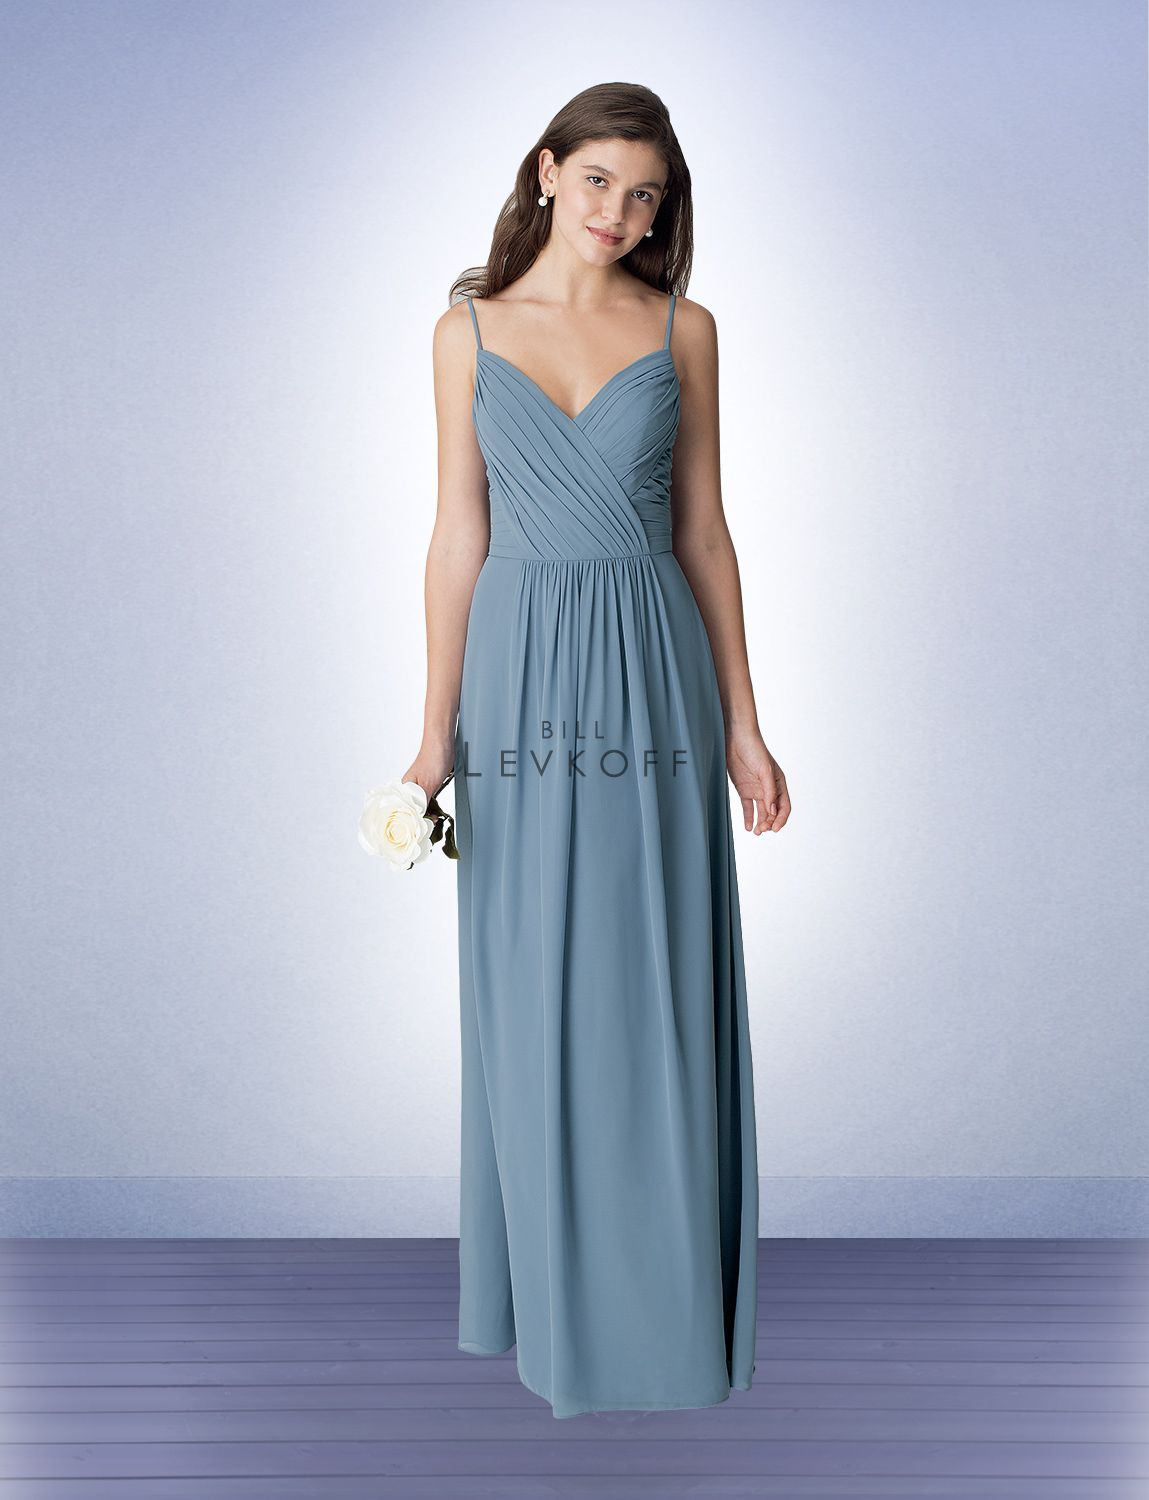 Bridesmaid dress style 1269 bridesmaid dresses by bill levkoff bridesmaid dress style 1269 bridesmaid dresses by bill levkoff available at http ombrellifo Choice Image